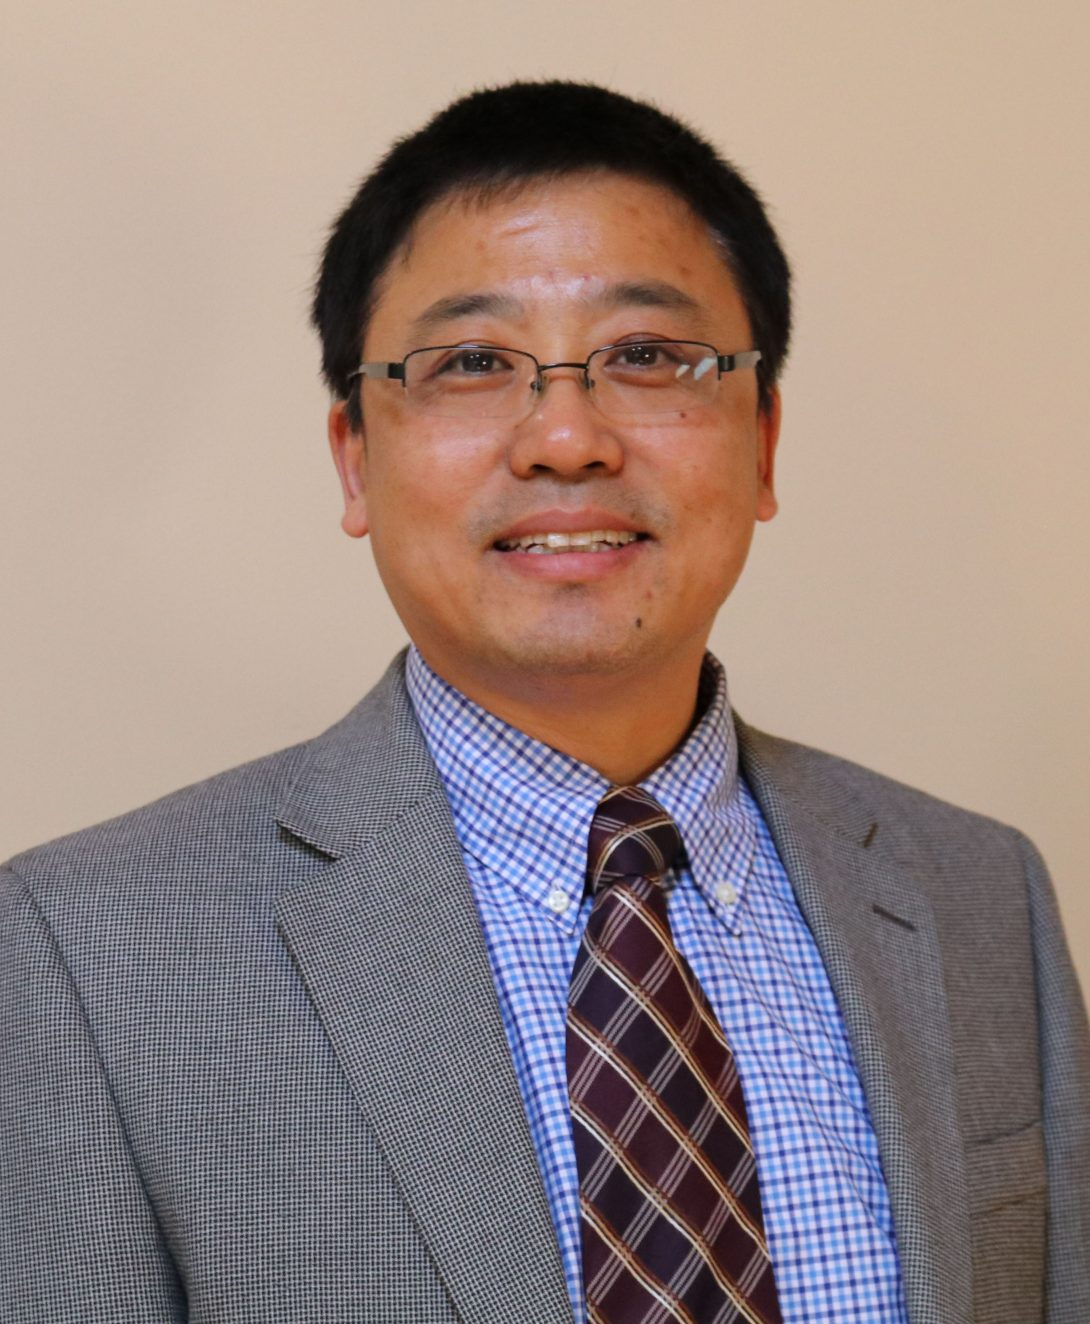 Dr. Xincheng Yao is the Principle Investigator for the Biomedical Optical Imaging and Functional Laboratory housed at the Lions of Illinois Eye Research Institute.